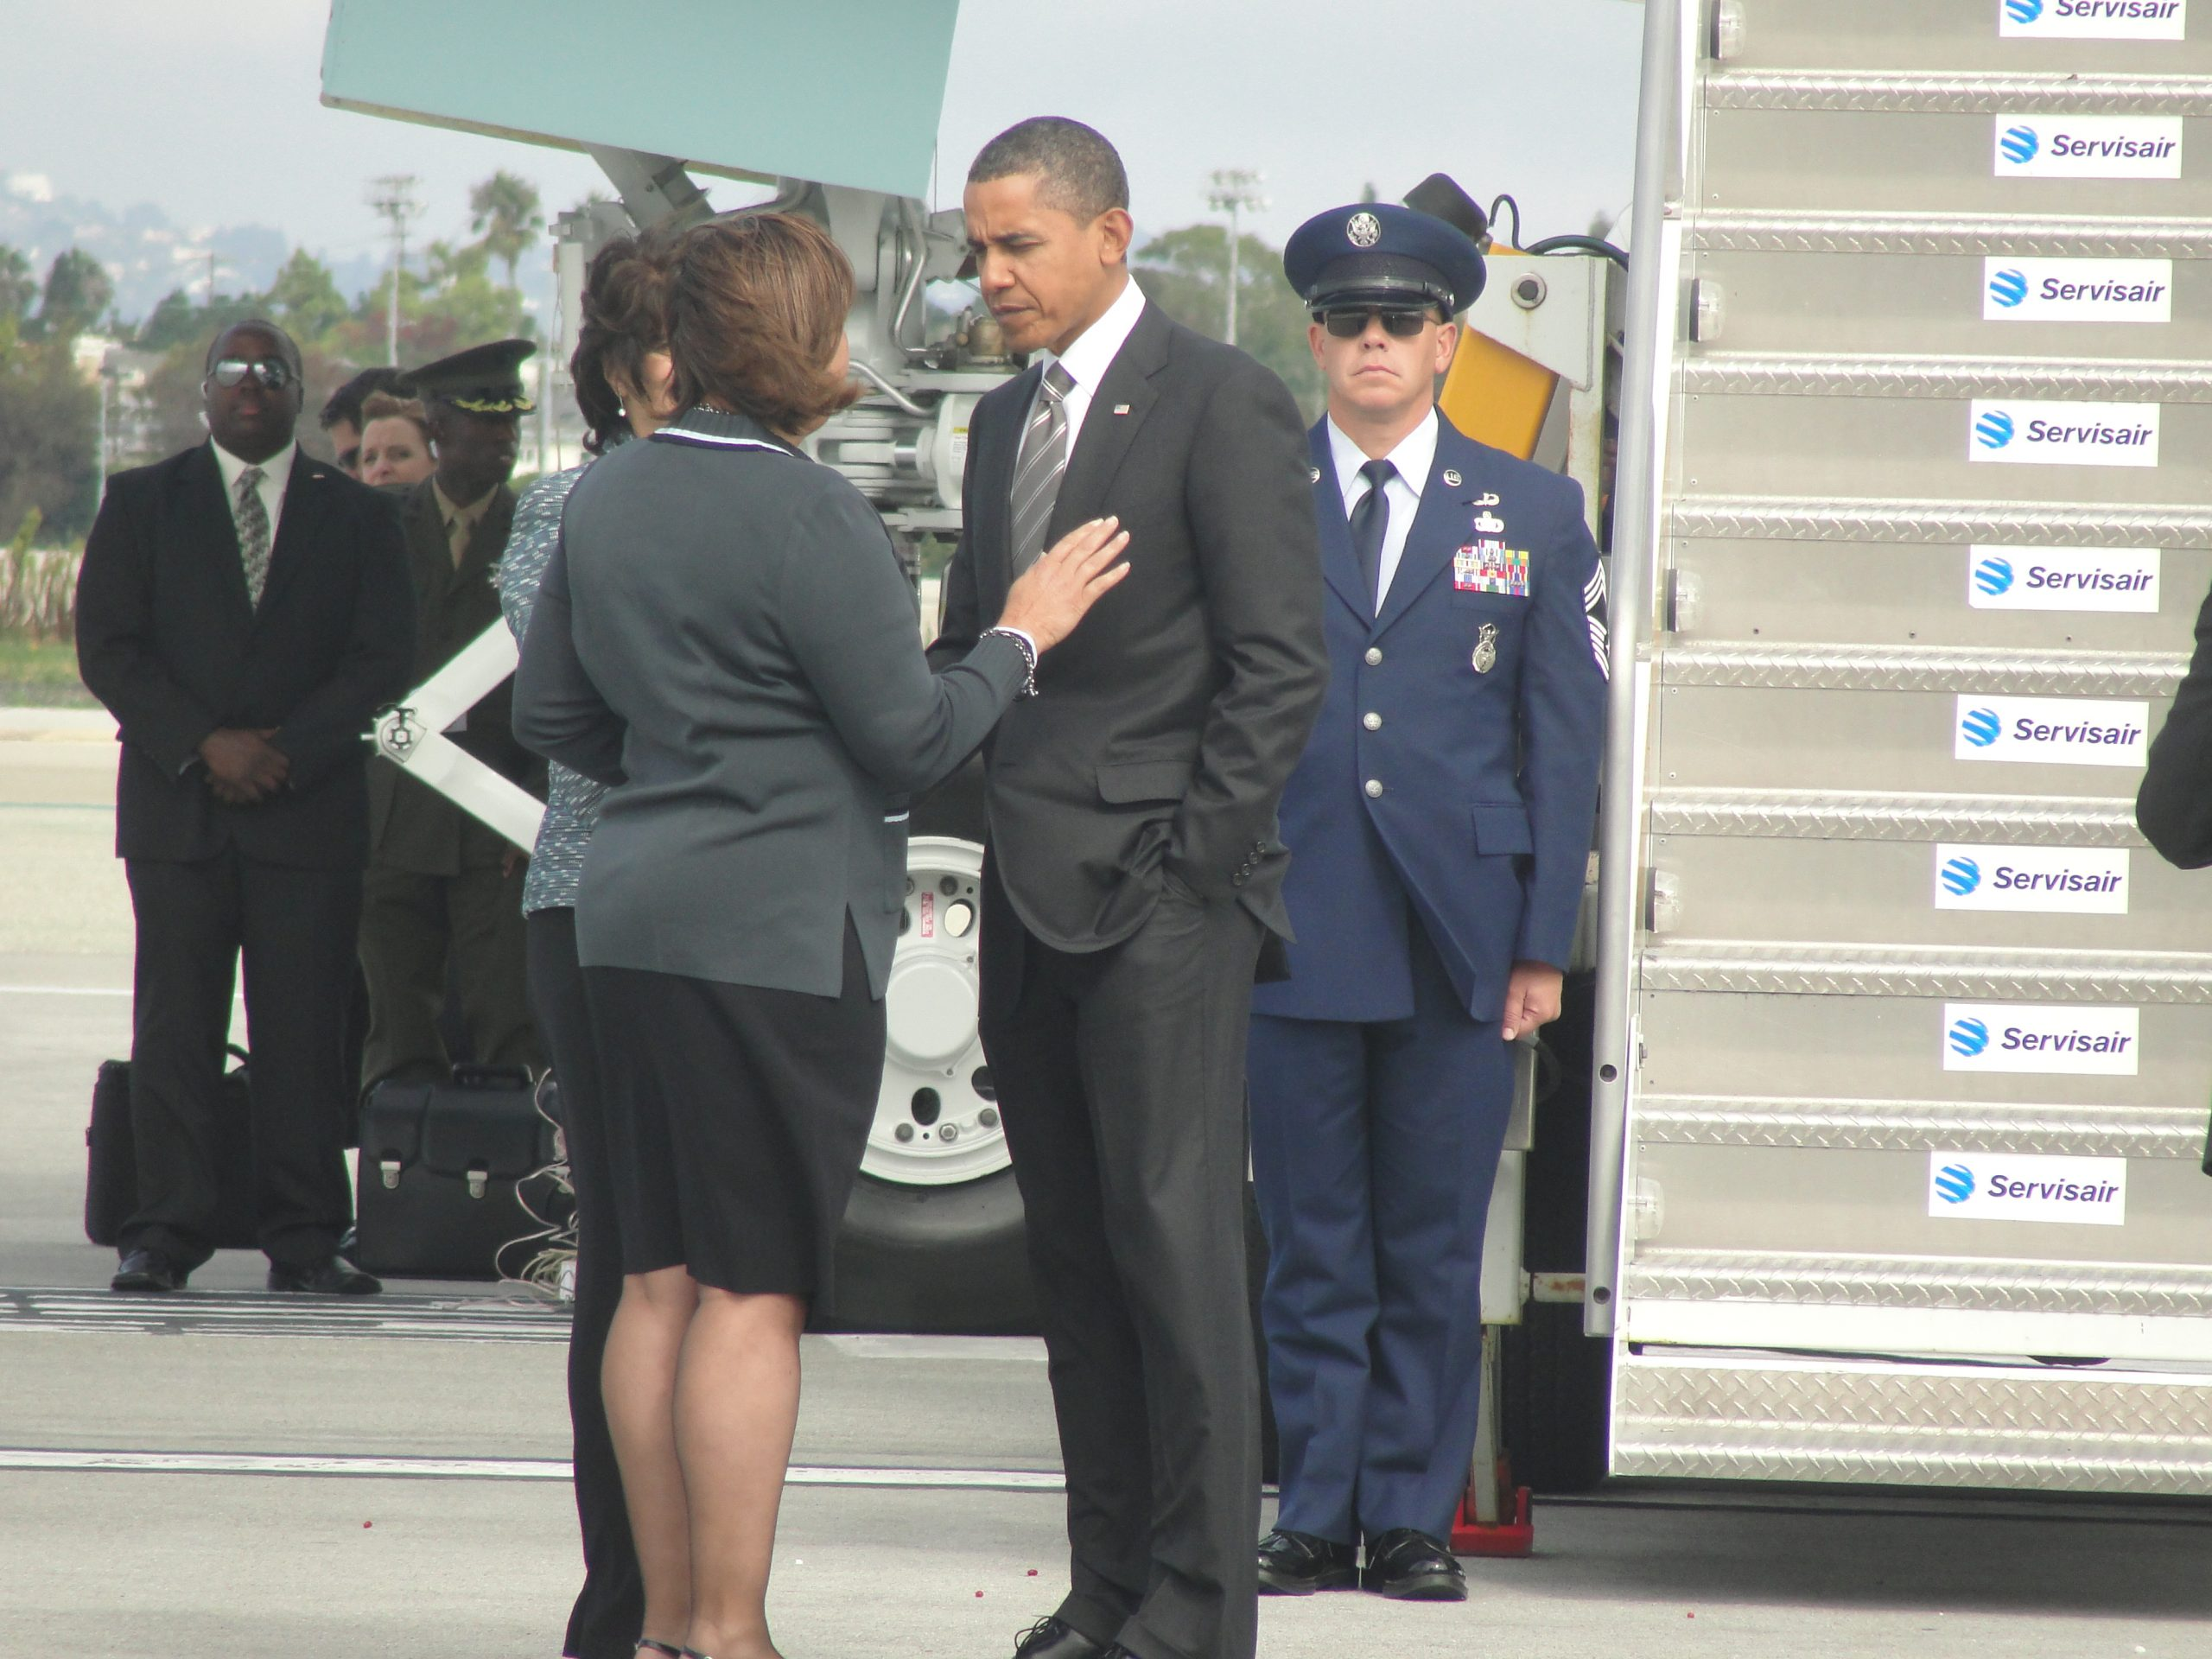 President Barack Obama confers with Congresswoman Laura Richardson (D-37) shortly after arriving at LAX Airport./news4usonline.com